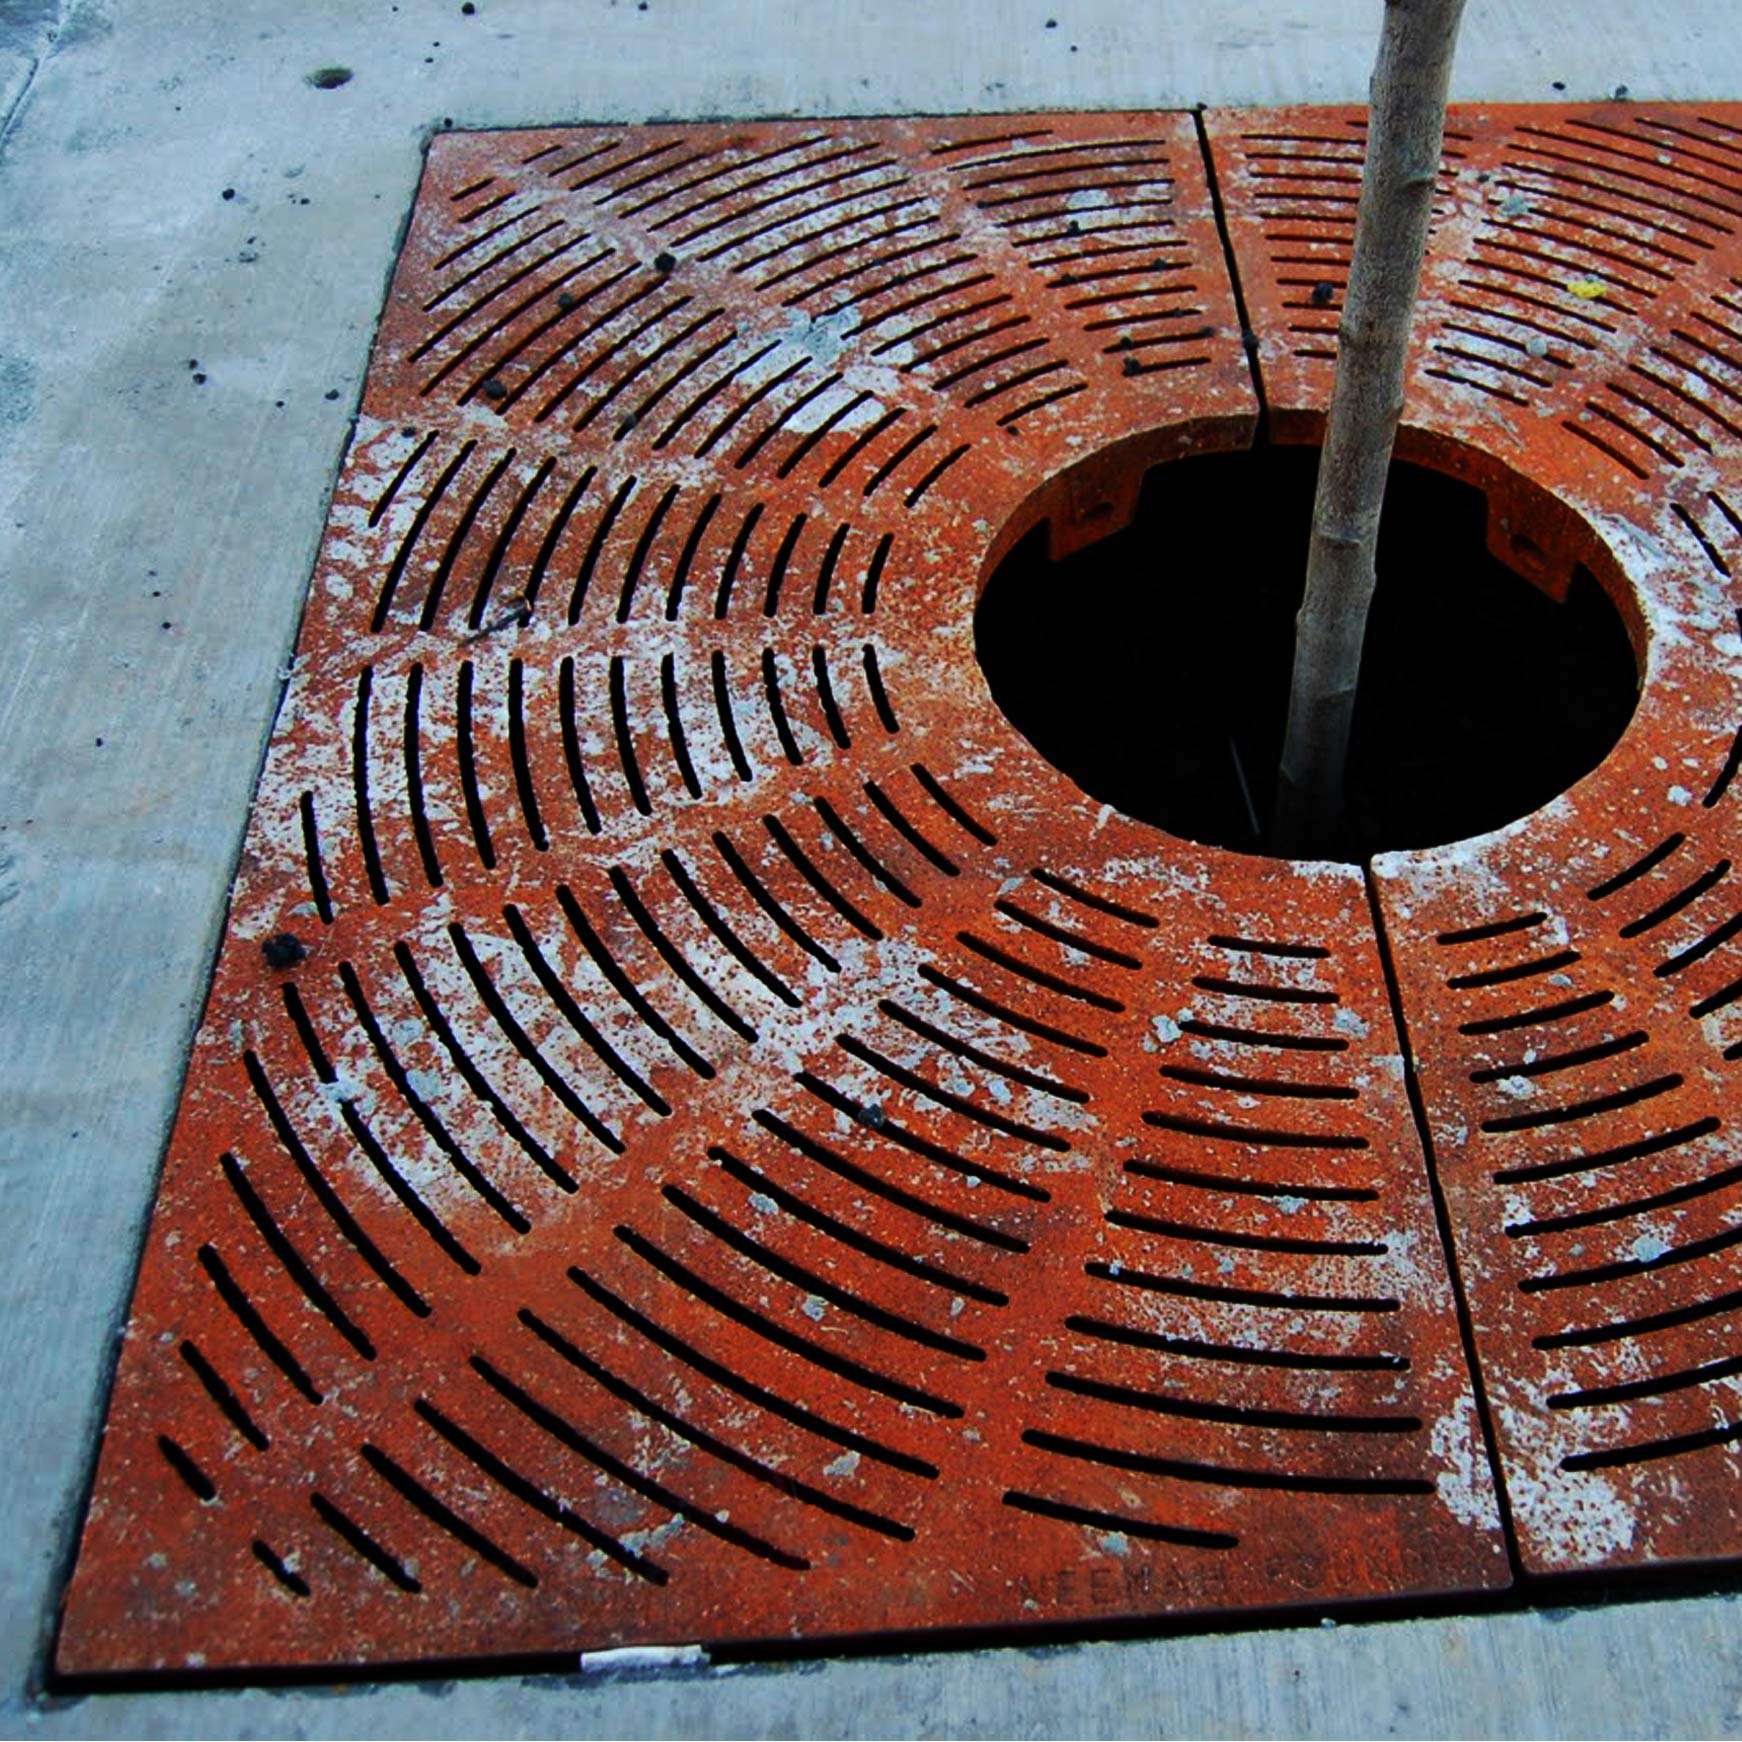 Unsightly Rusted Steel Tree Grate - Try Recycled Plastic Instead